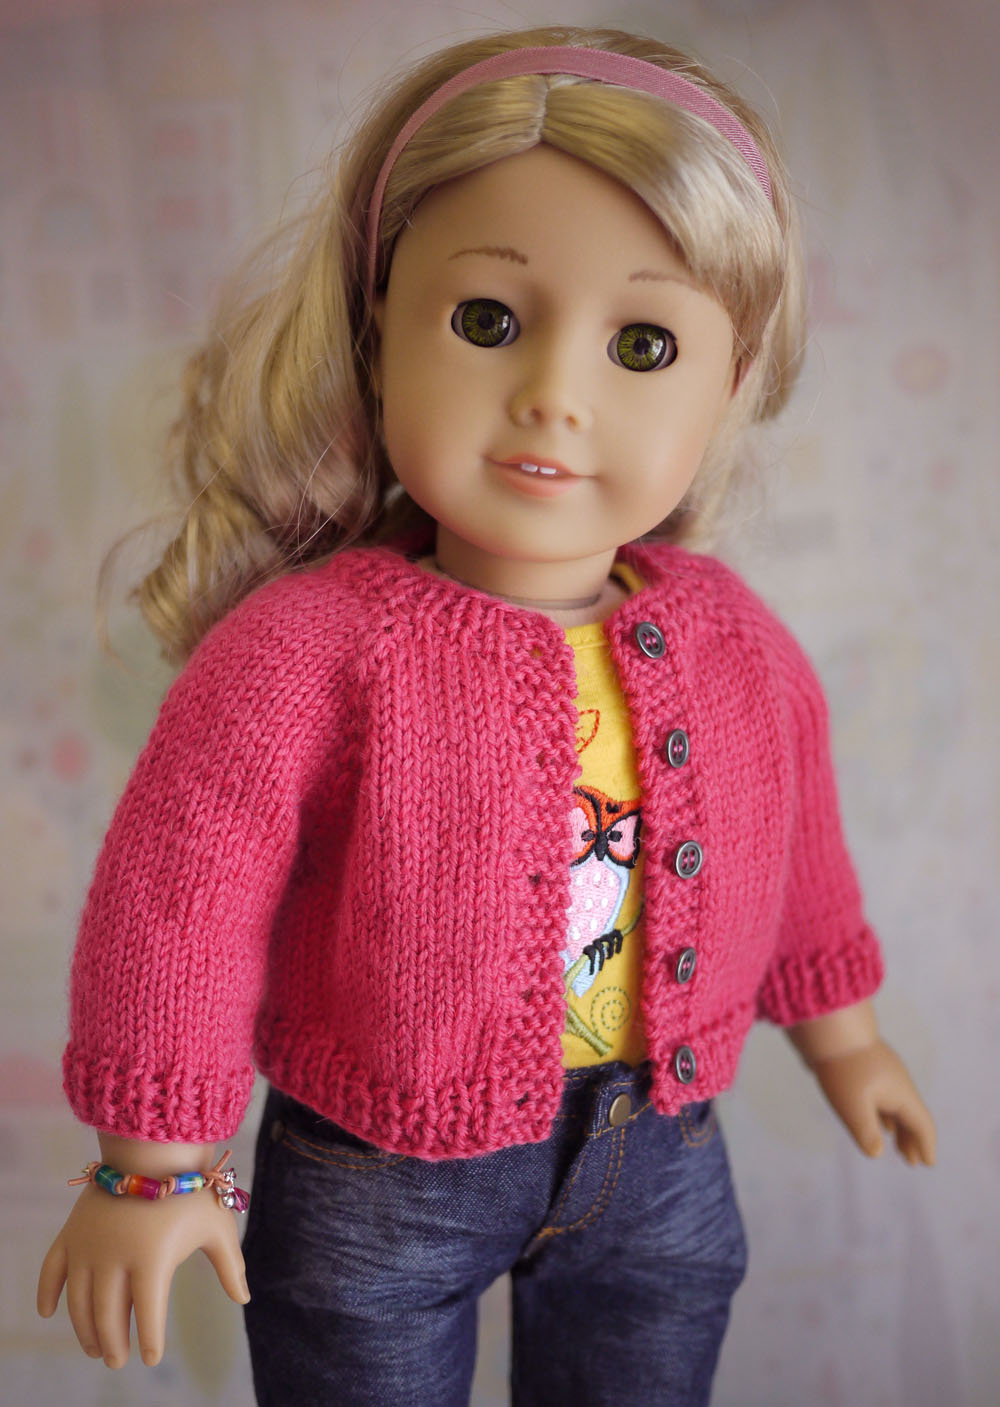 American Girl Doll Cardigan Sweater Knitting Pattern Cindy Rice Designs